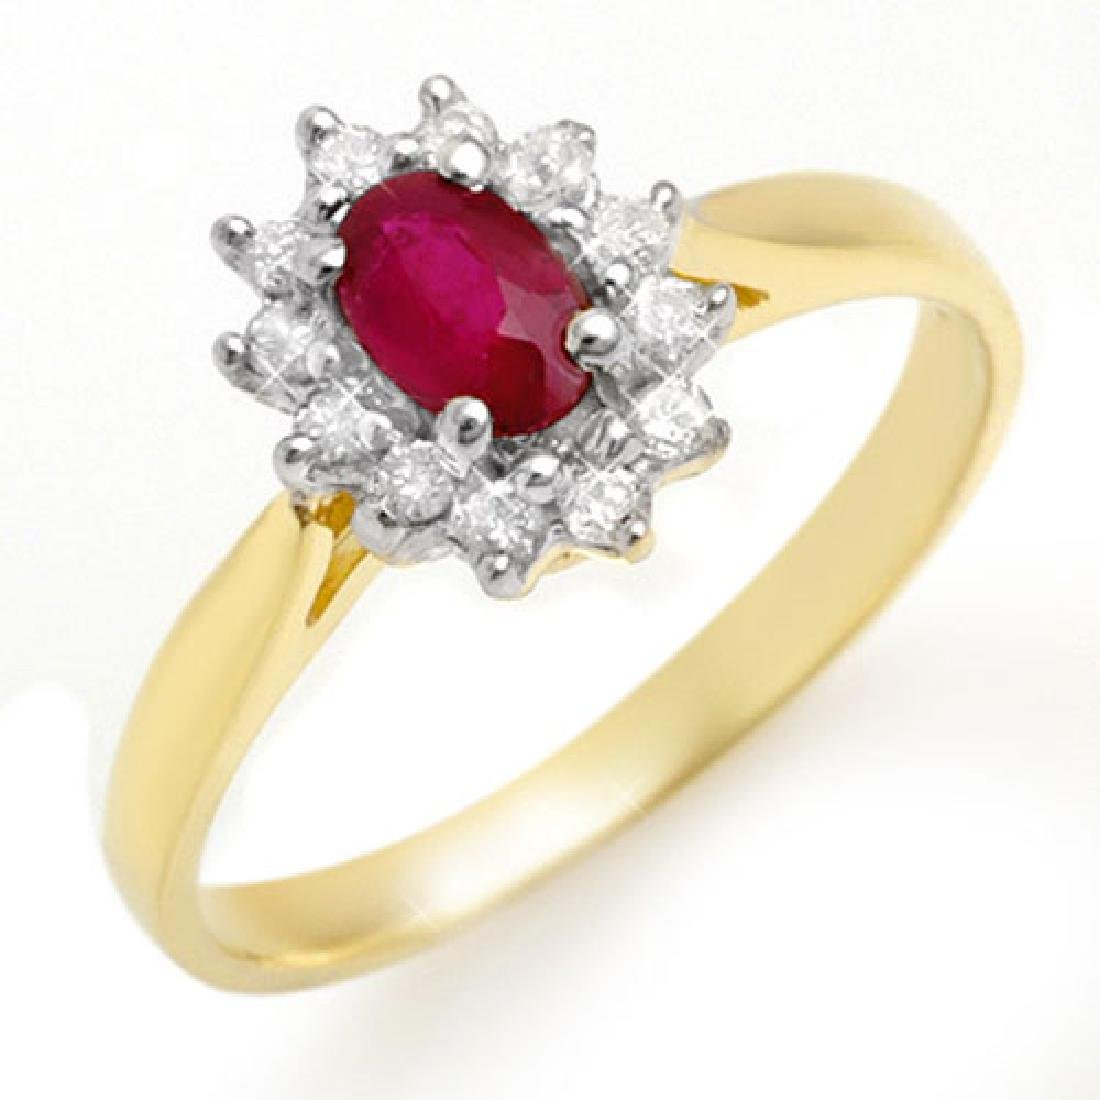 0.51 CTW Ruby & Diamond Ring 10K Yellow Gold